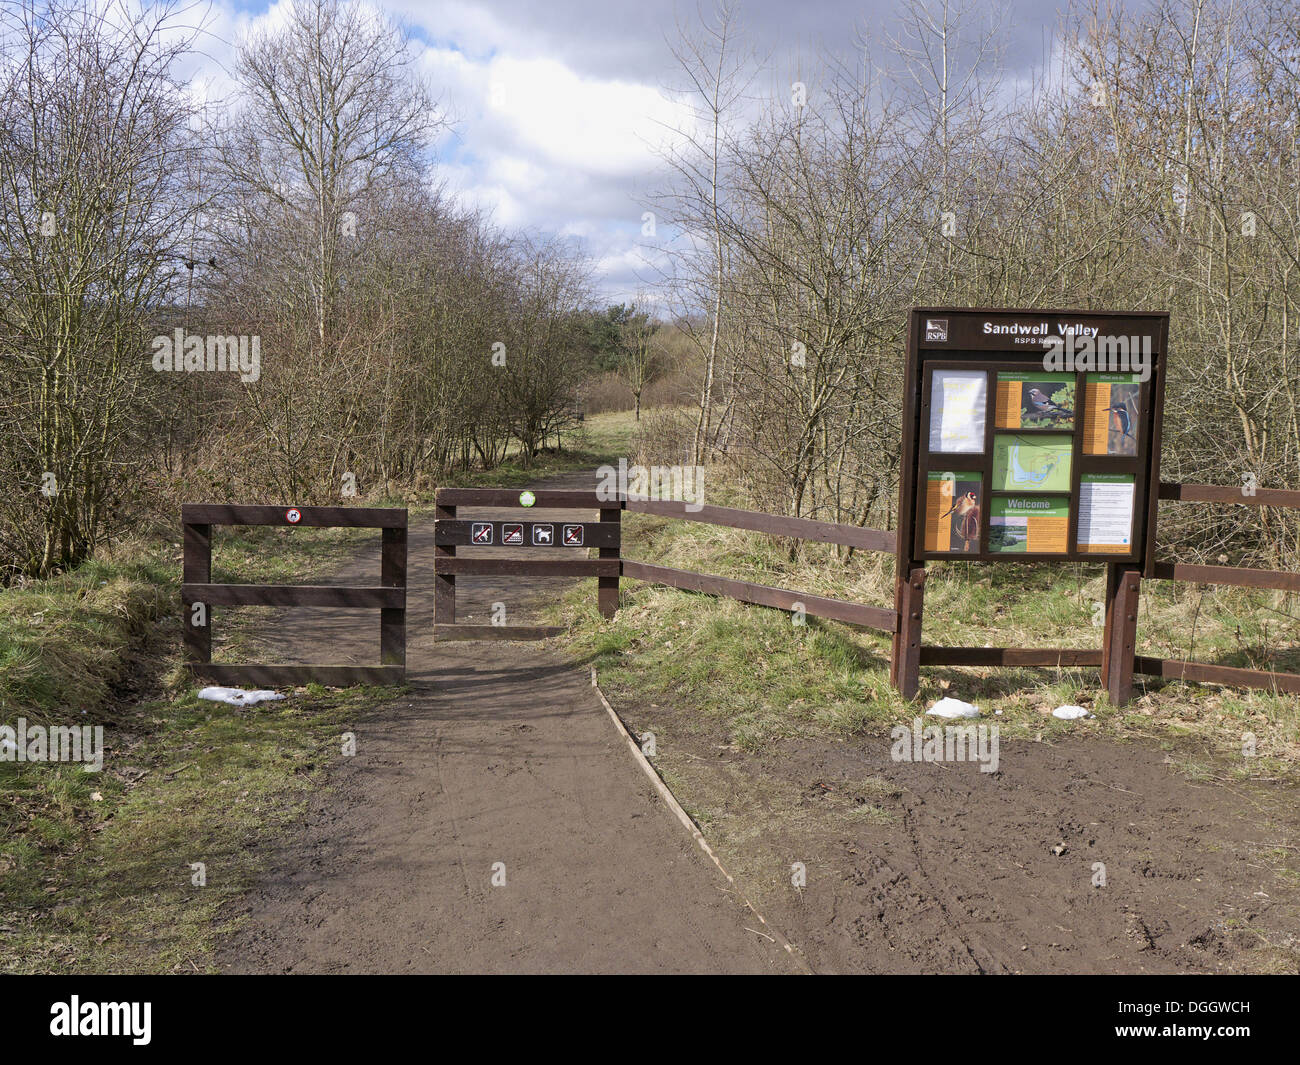 Reserve entrance sign and path, Sandwell Valley RSPB Reserve, West Midlands, England, April - Stock Image